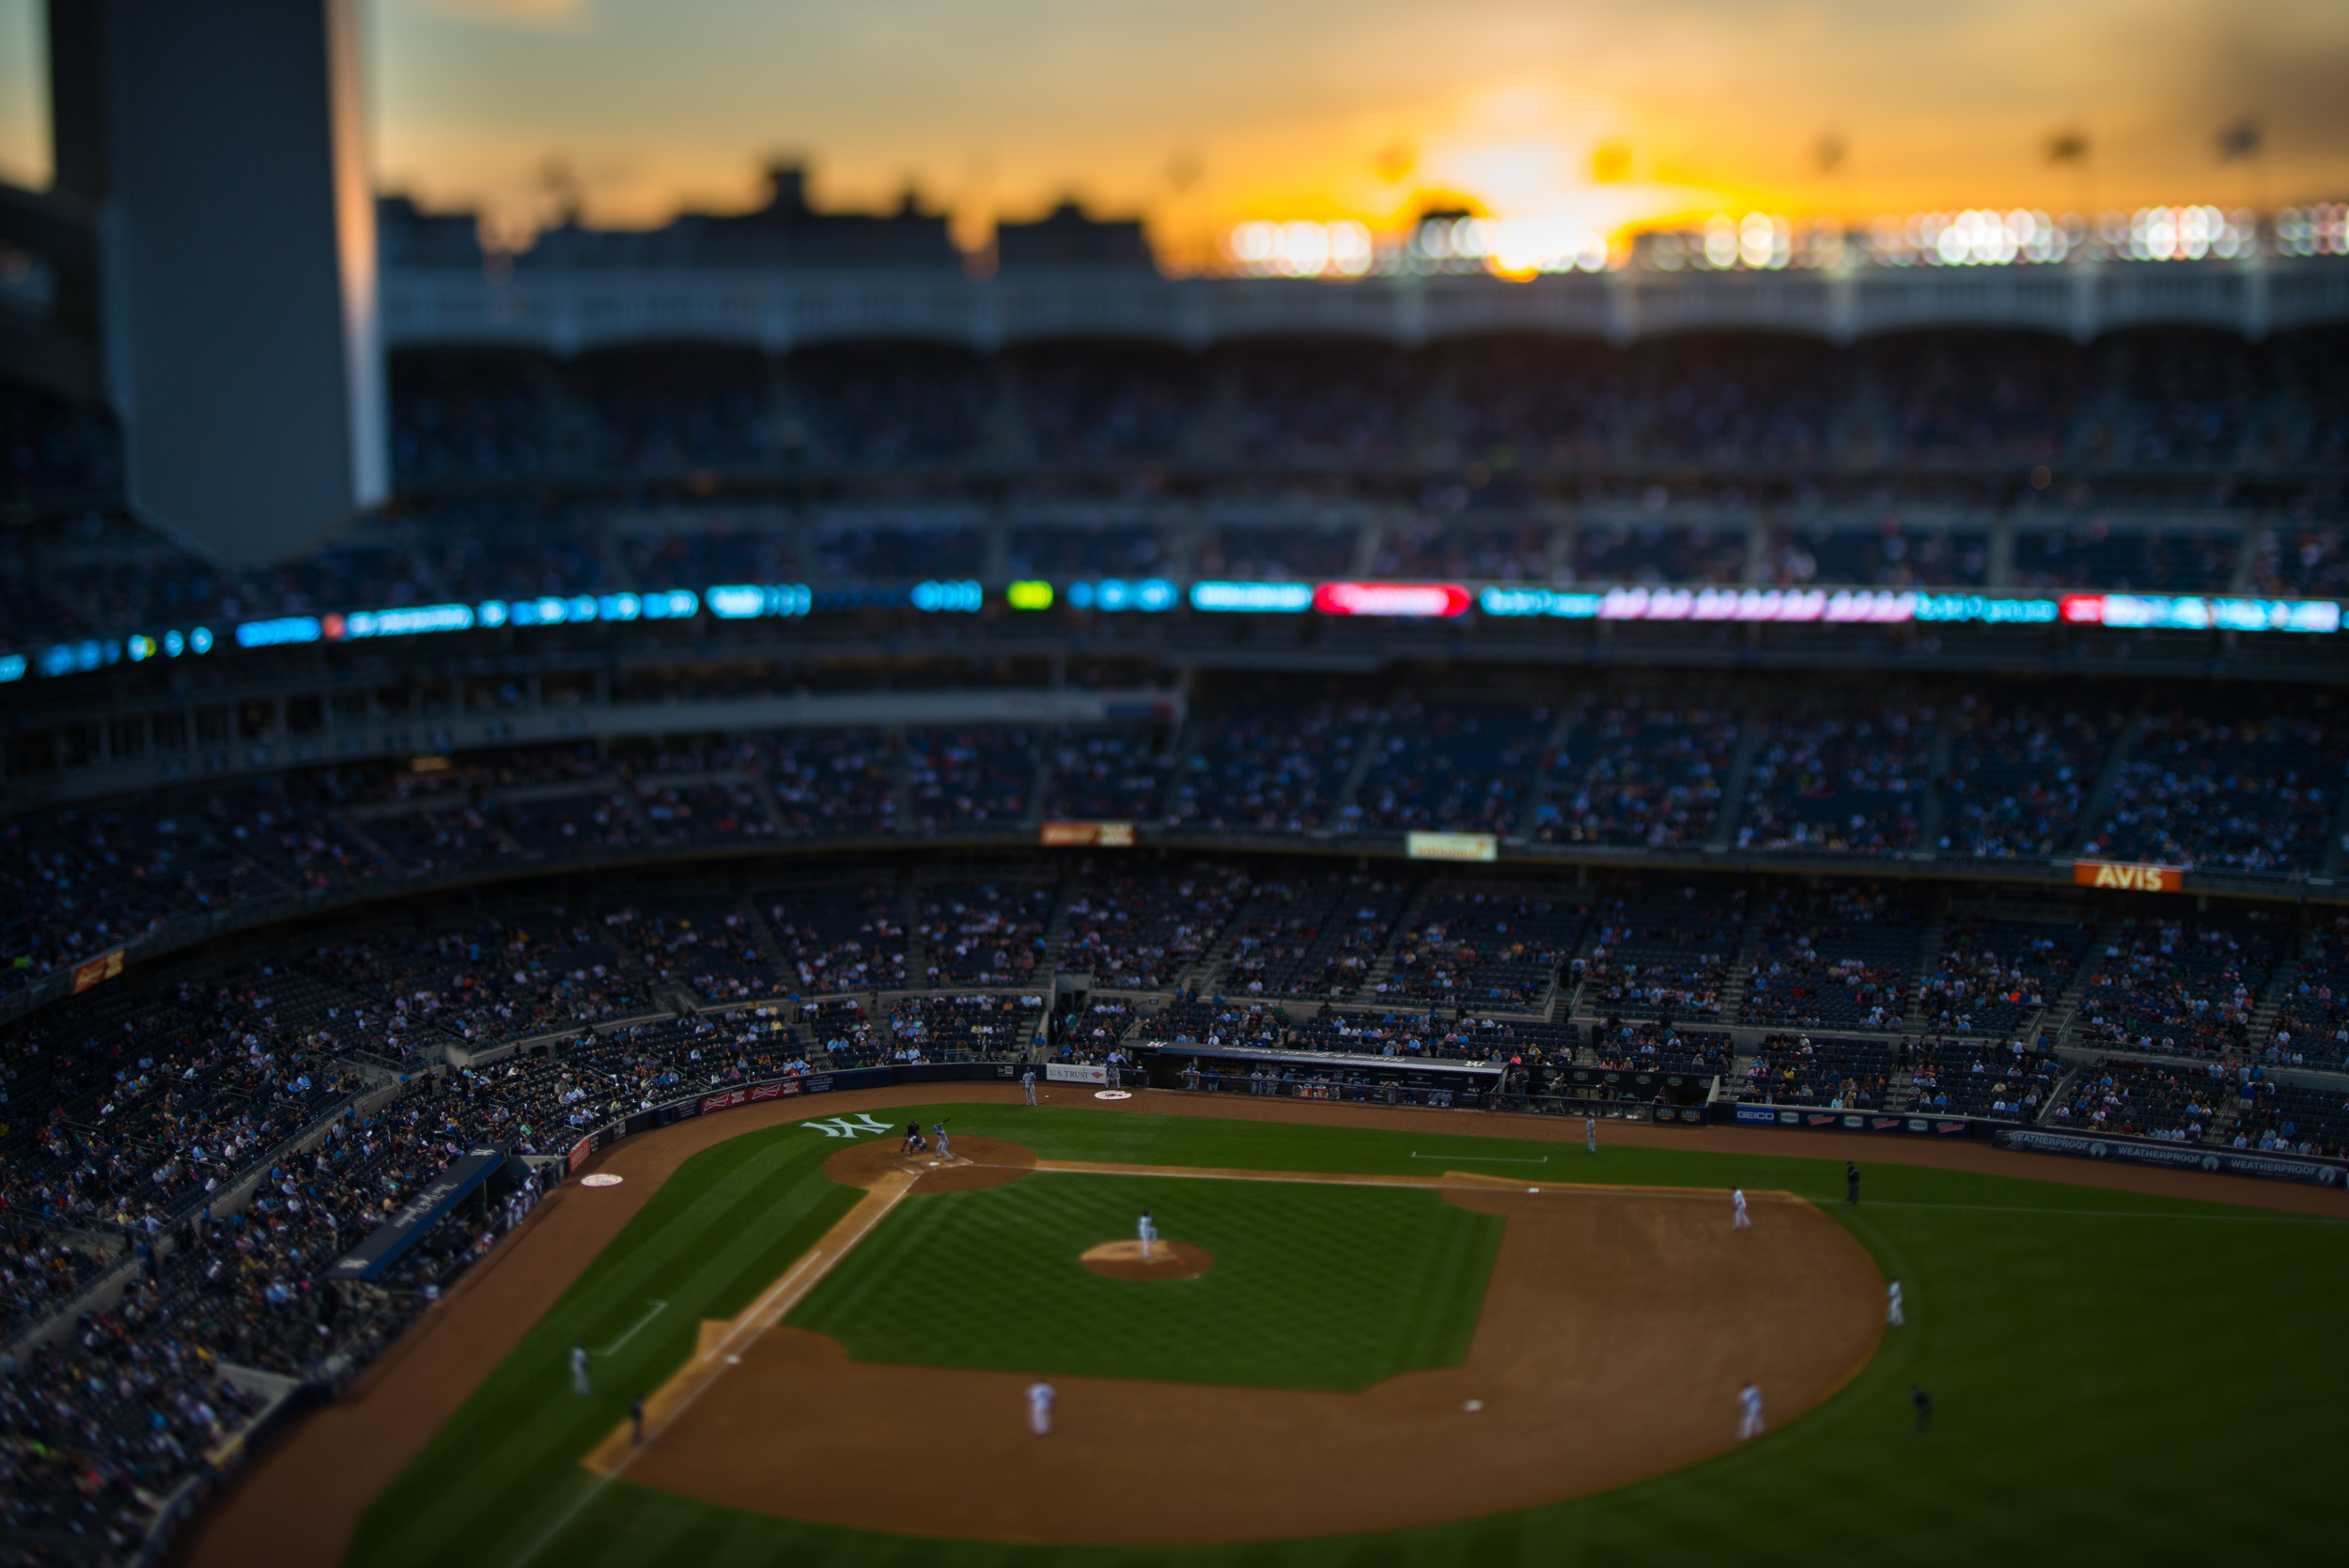 YANKEE_STADIUM_VIEWS0003.JPG